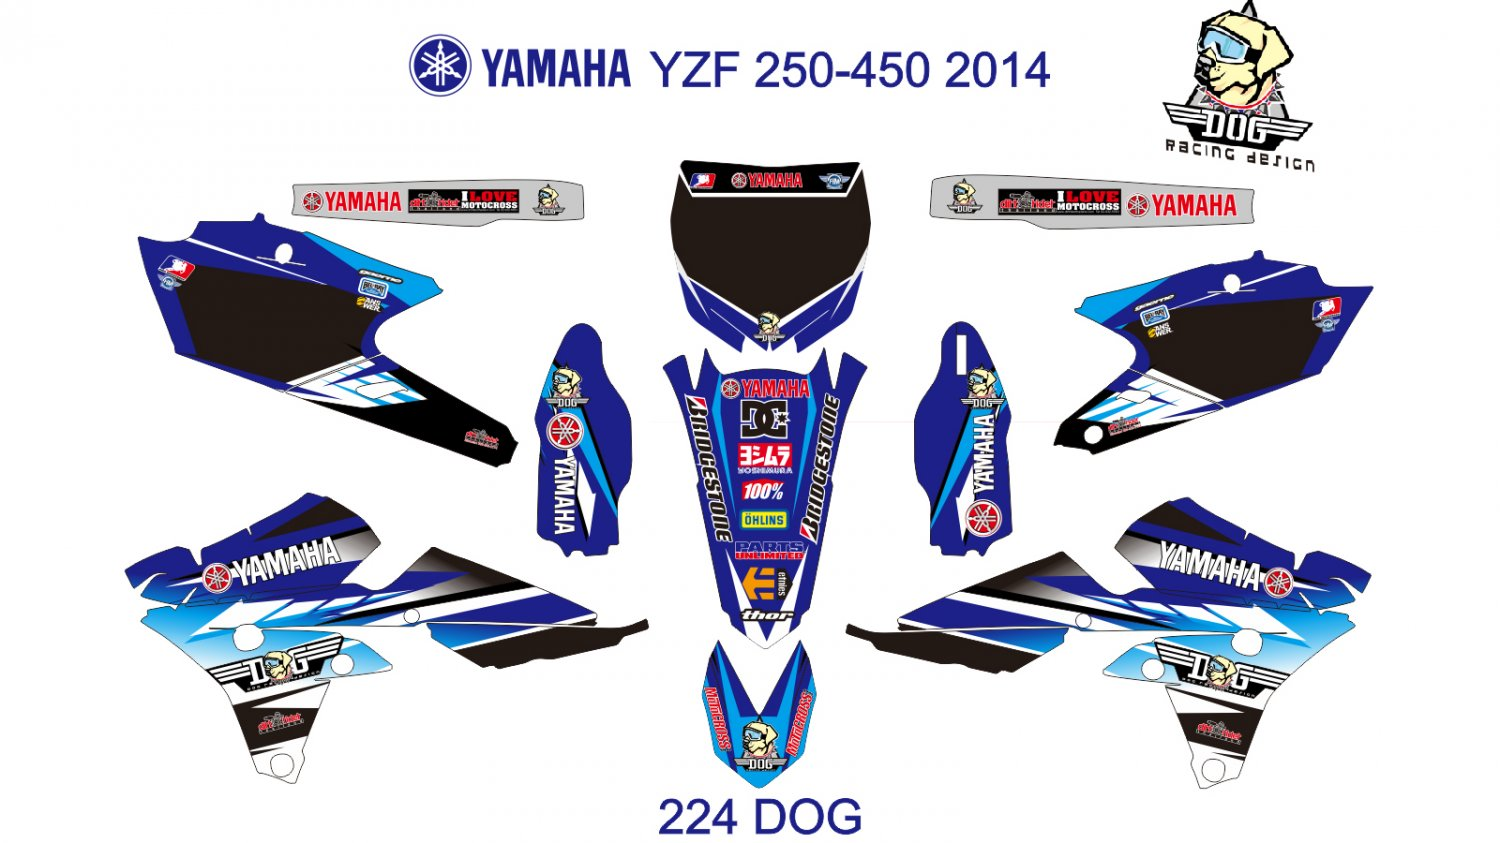 YAMAHA YZF 250-450 2014 GRAPHIC DECAL KIT CODE.224